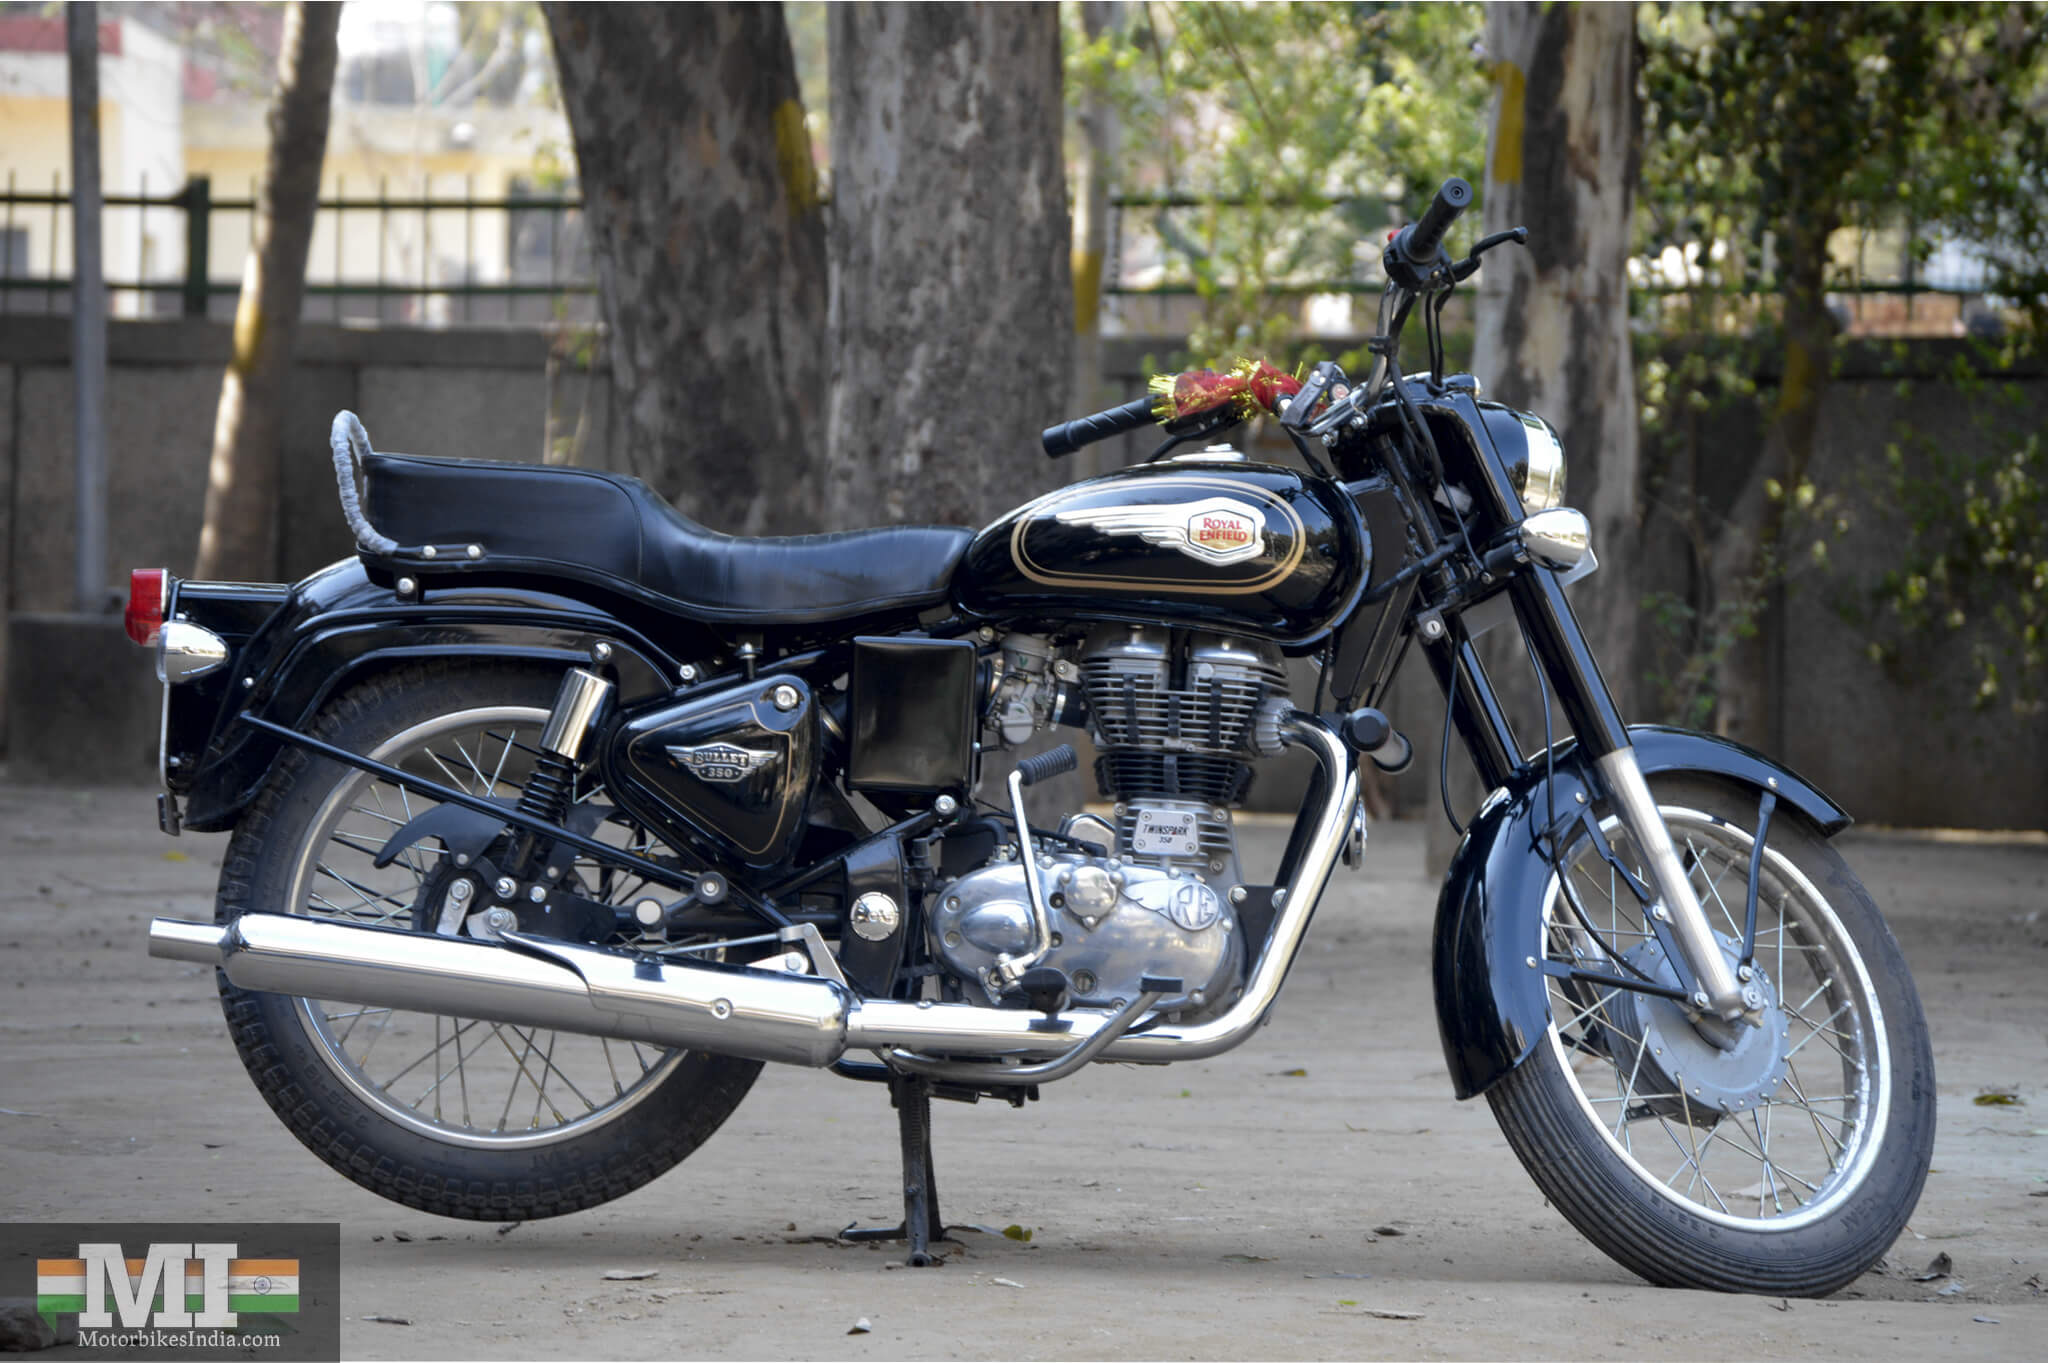 Royal enfield bullet pictures - Royal Enfield Bullet 350 Review